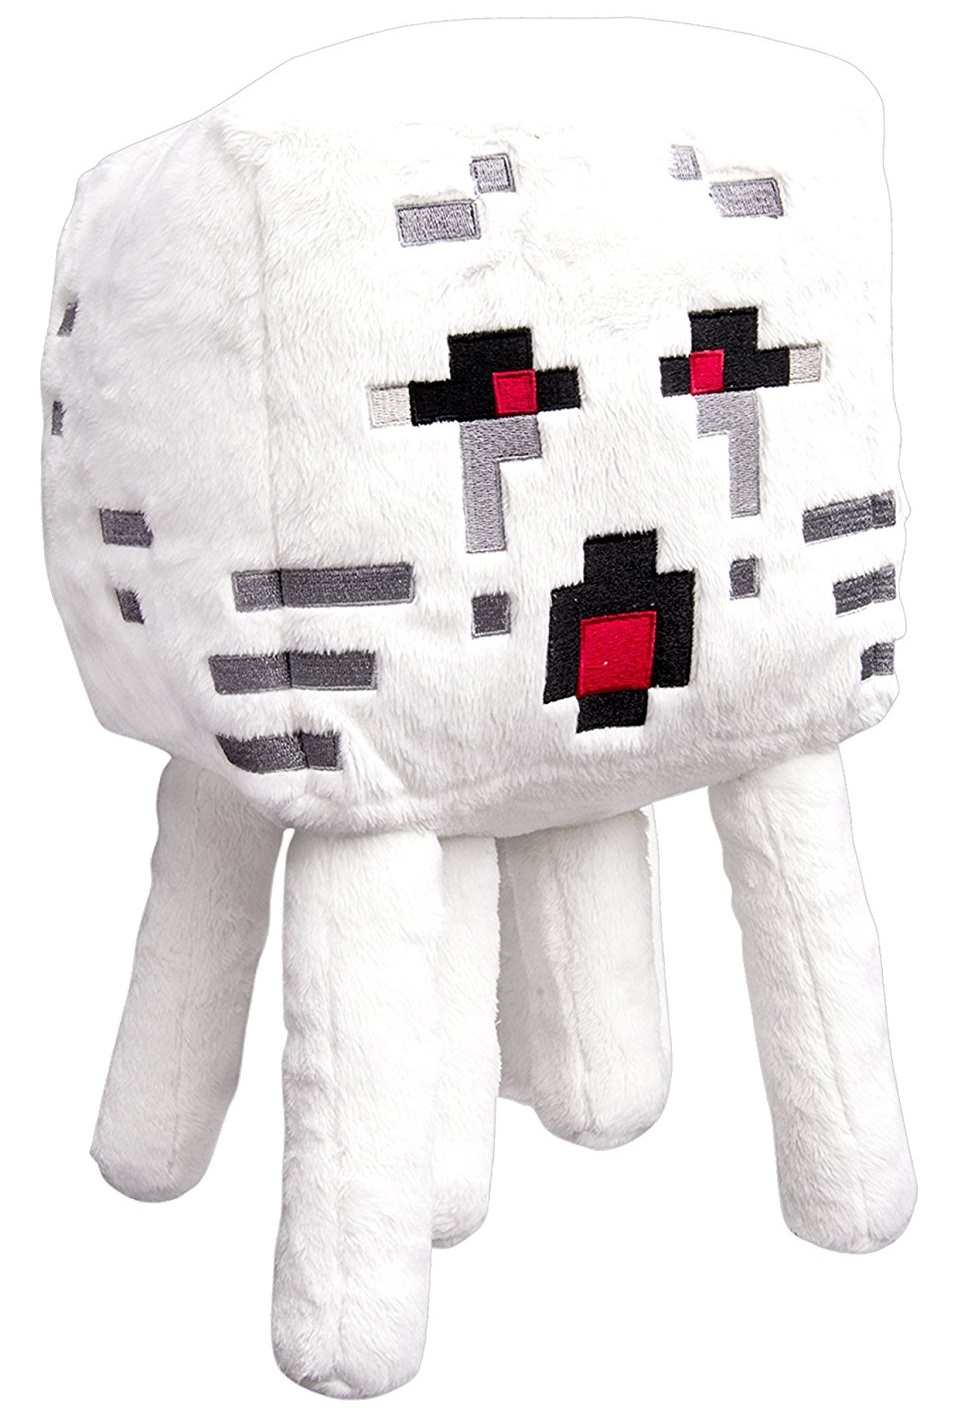 MINECRAFT GHAST PLUSH TOY MASCOT FIGURKA GHOST